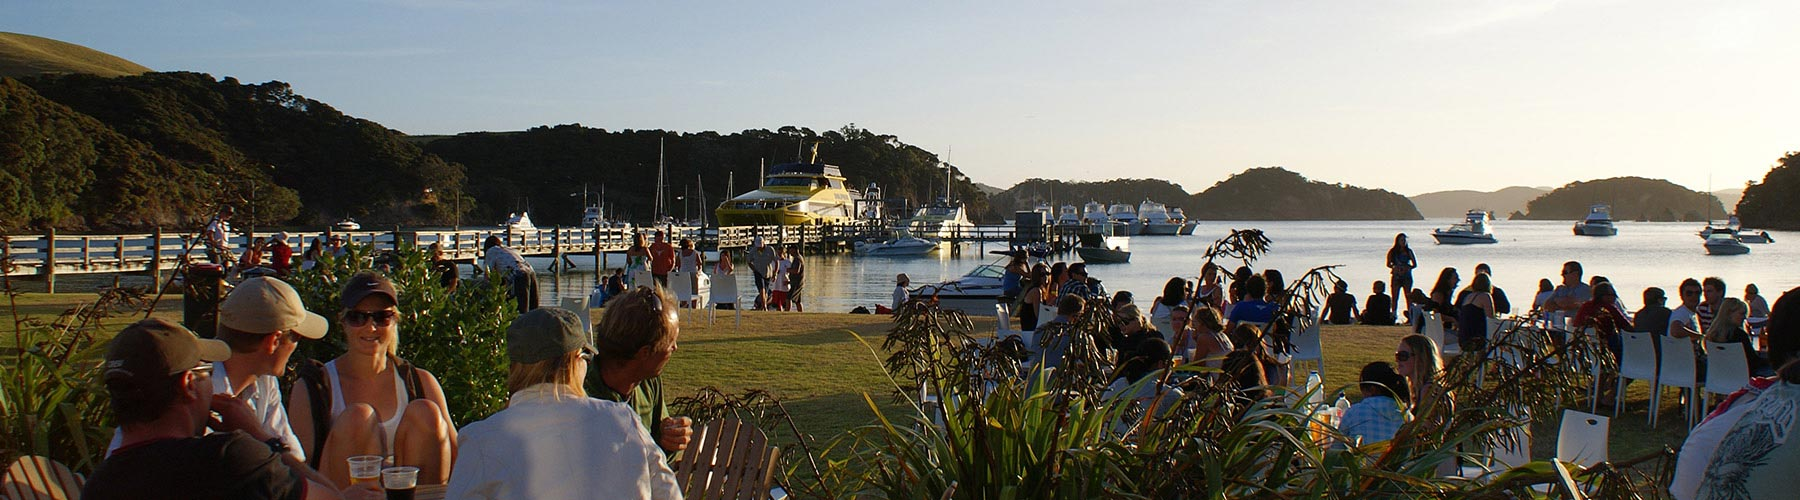 Things to do at the Bay of Islands